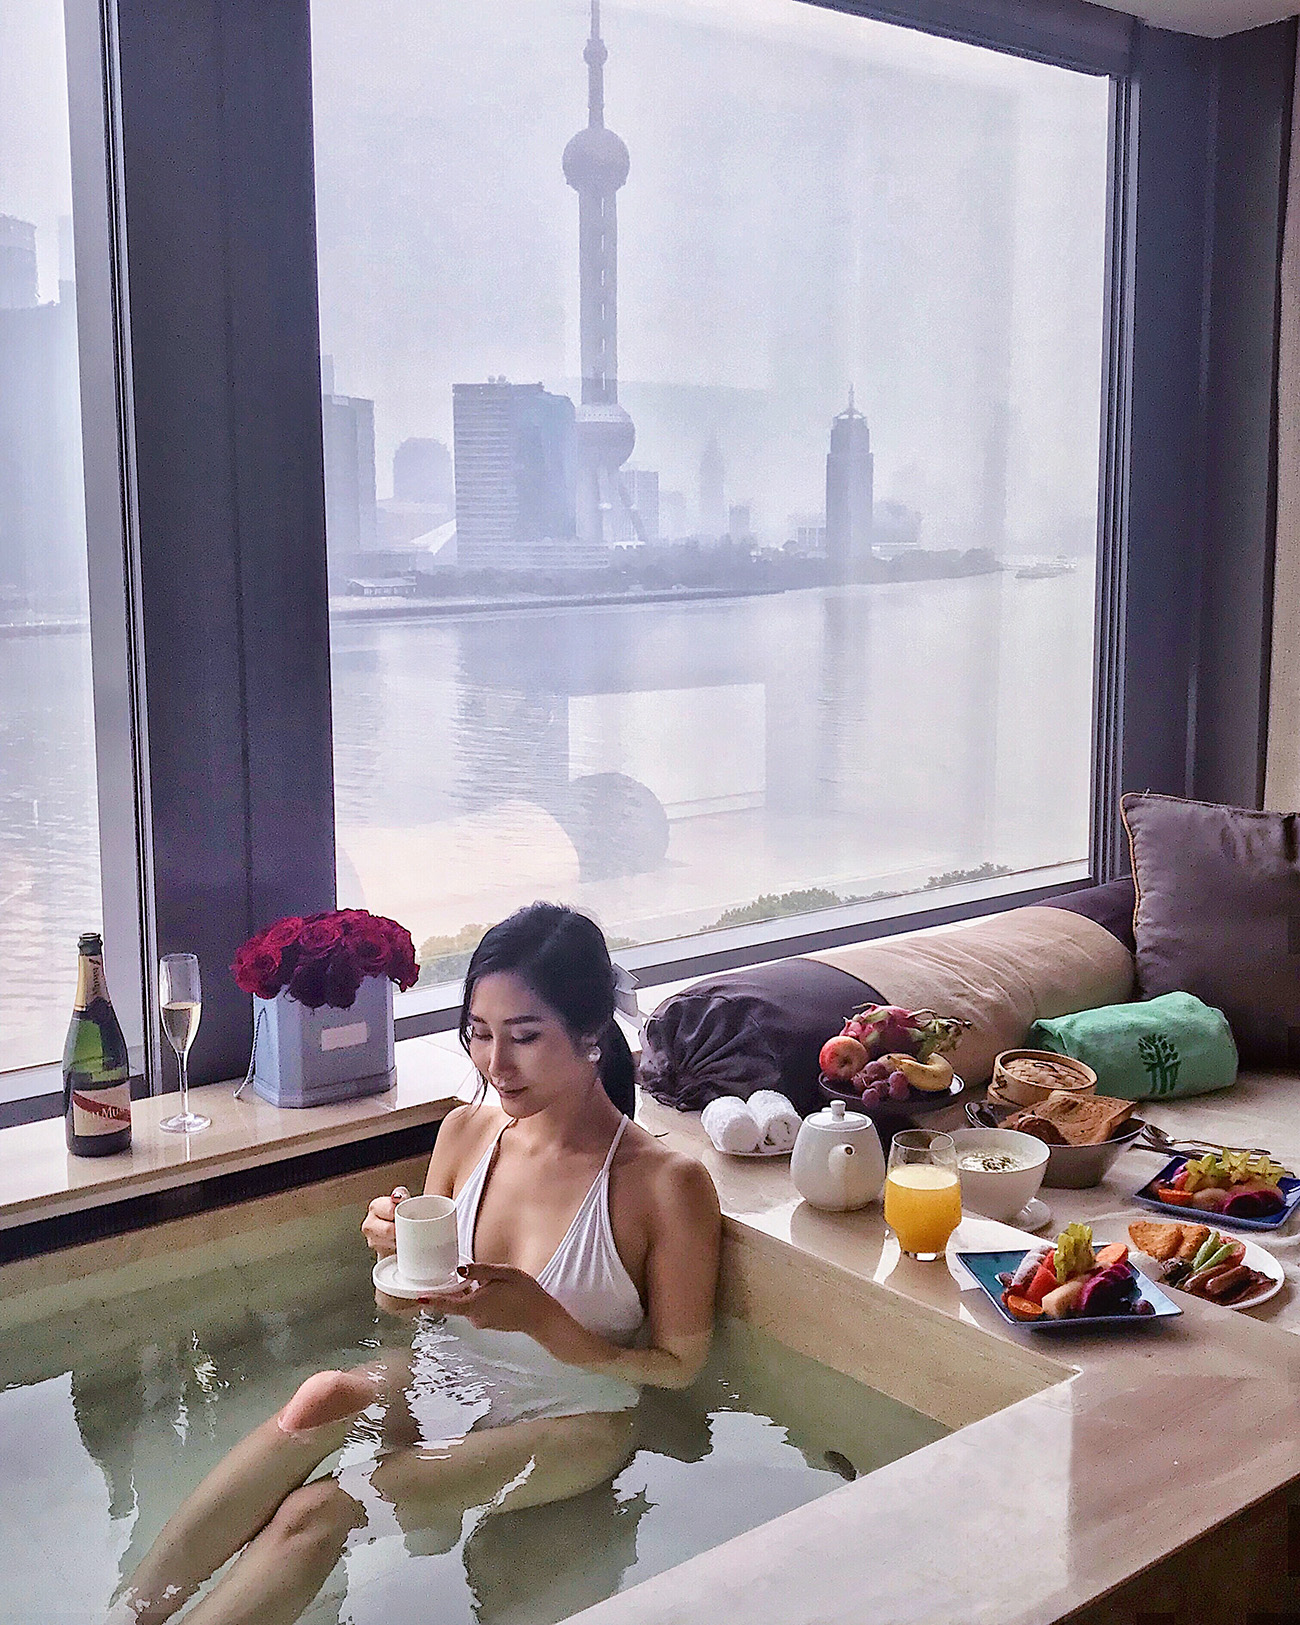 Banyan Tree Shanghai on the Bund - Hotel Room with a Pool and a View   Of Leather and Lace - Fashion & Travel Blog by Tina Lee   hotel review, shanghai city, pearl tower